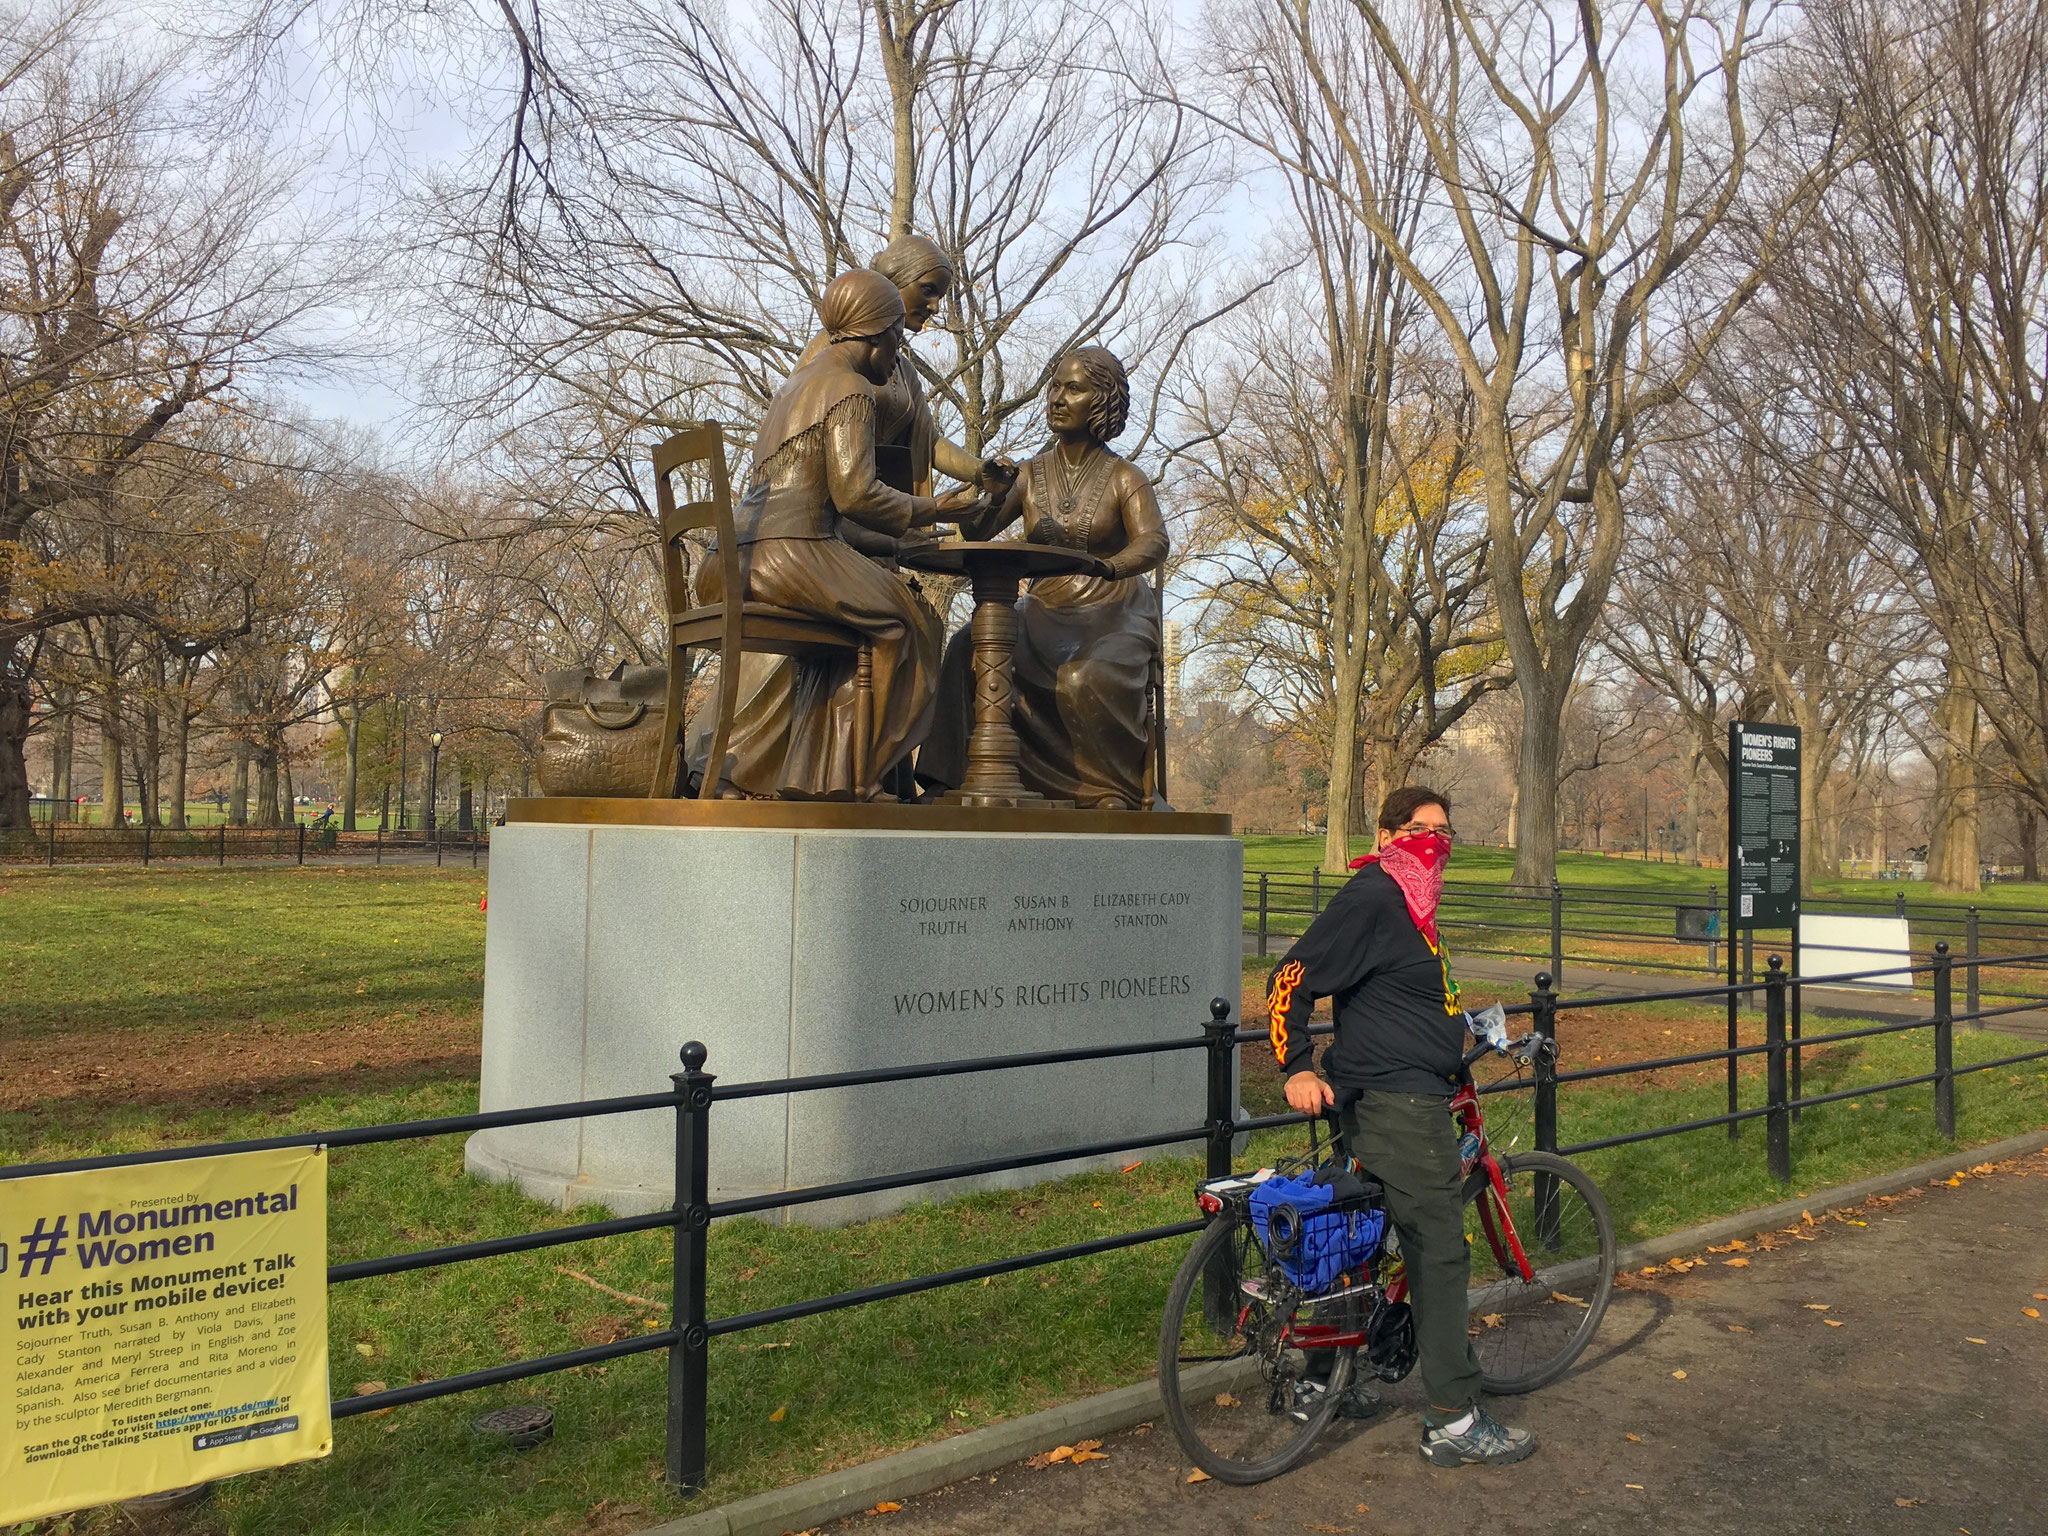 The Bandit 31, visiting the statue for Women's Rights in Central Park, Dec. 2020